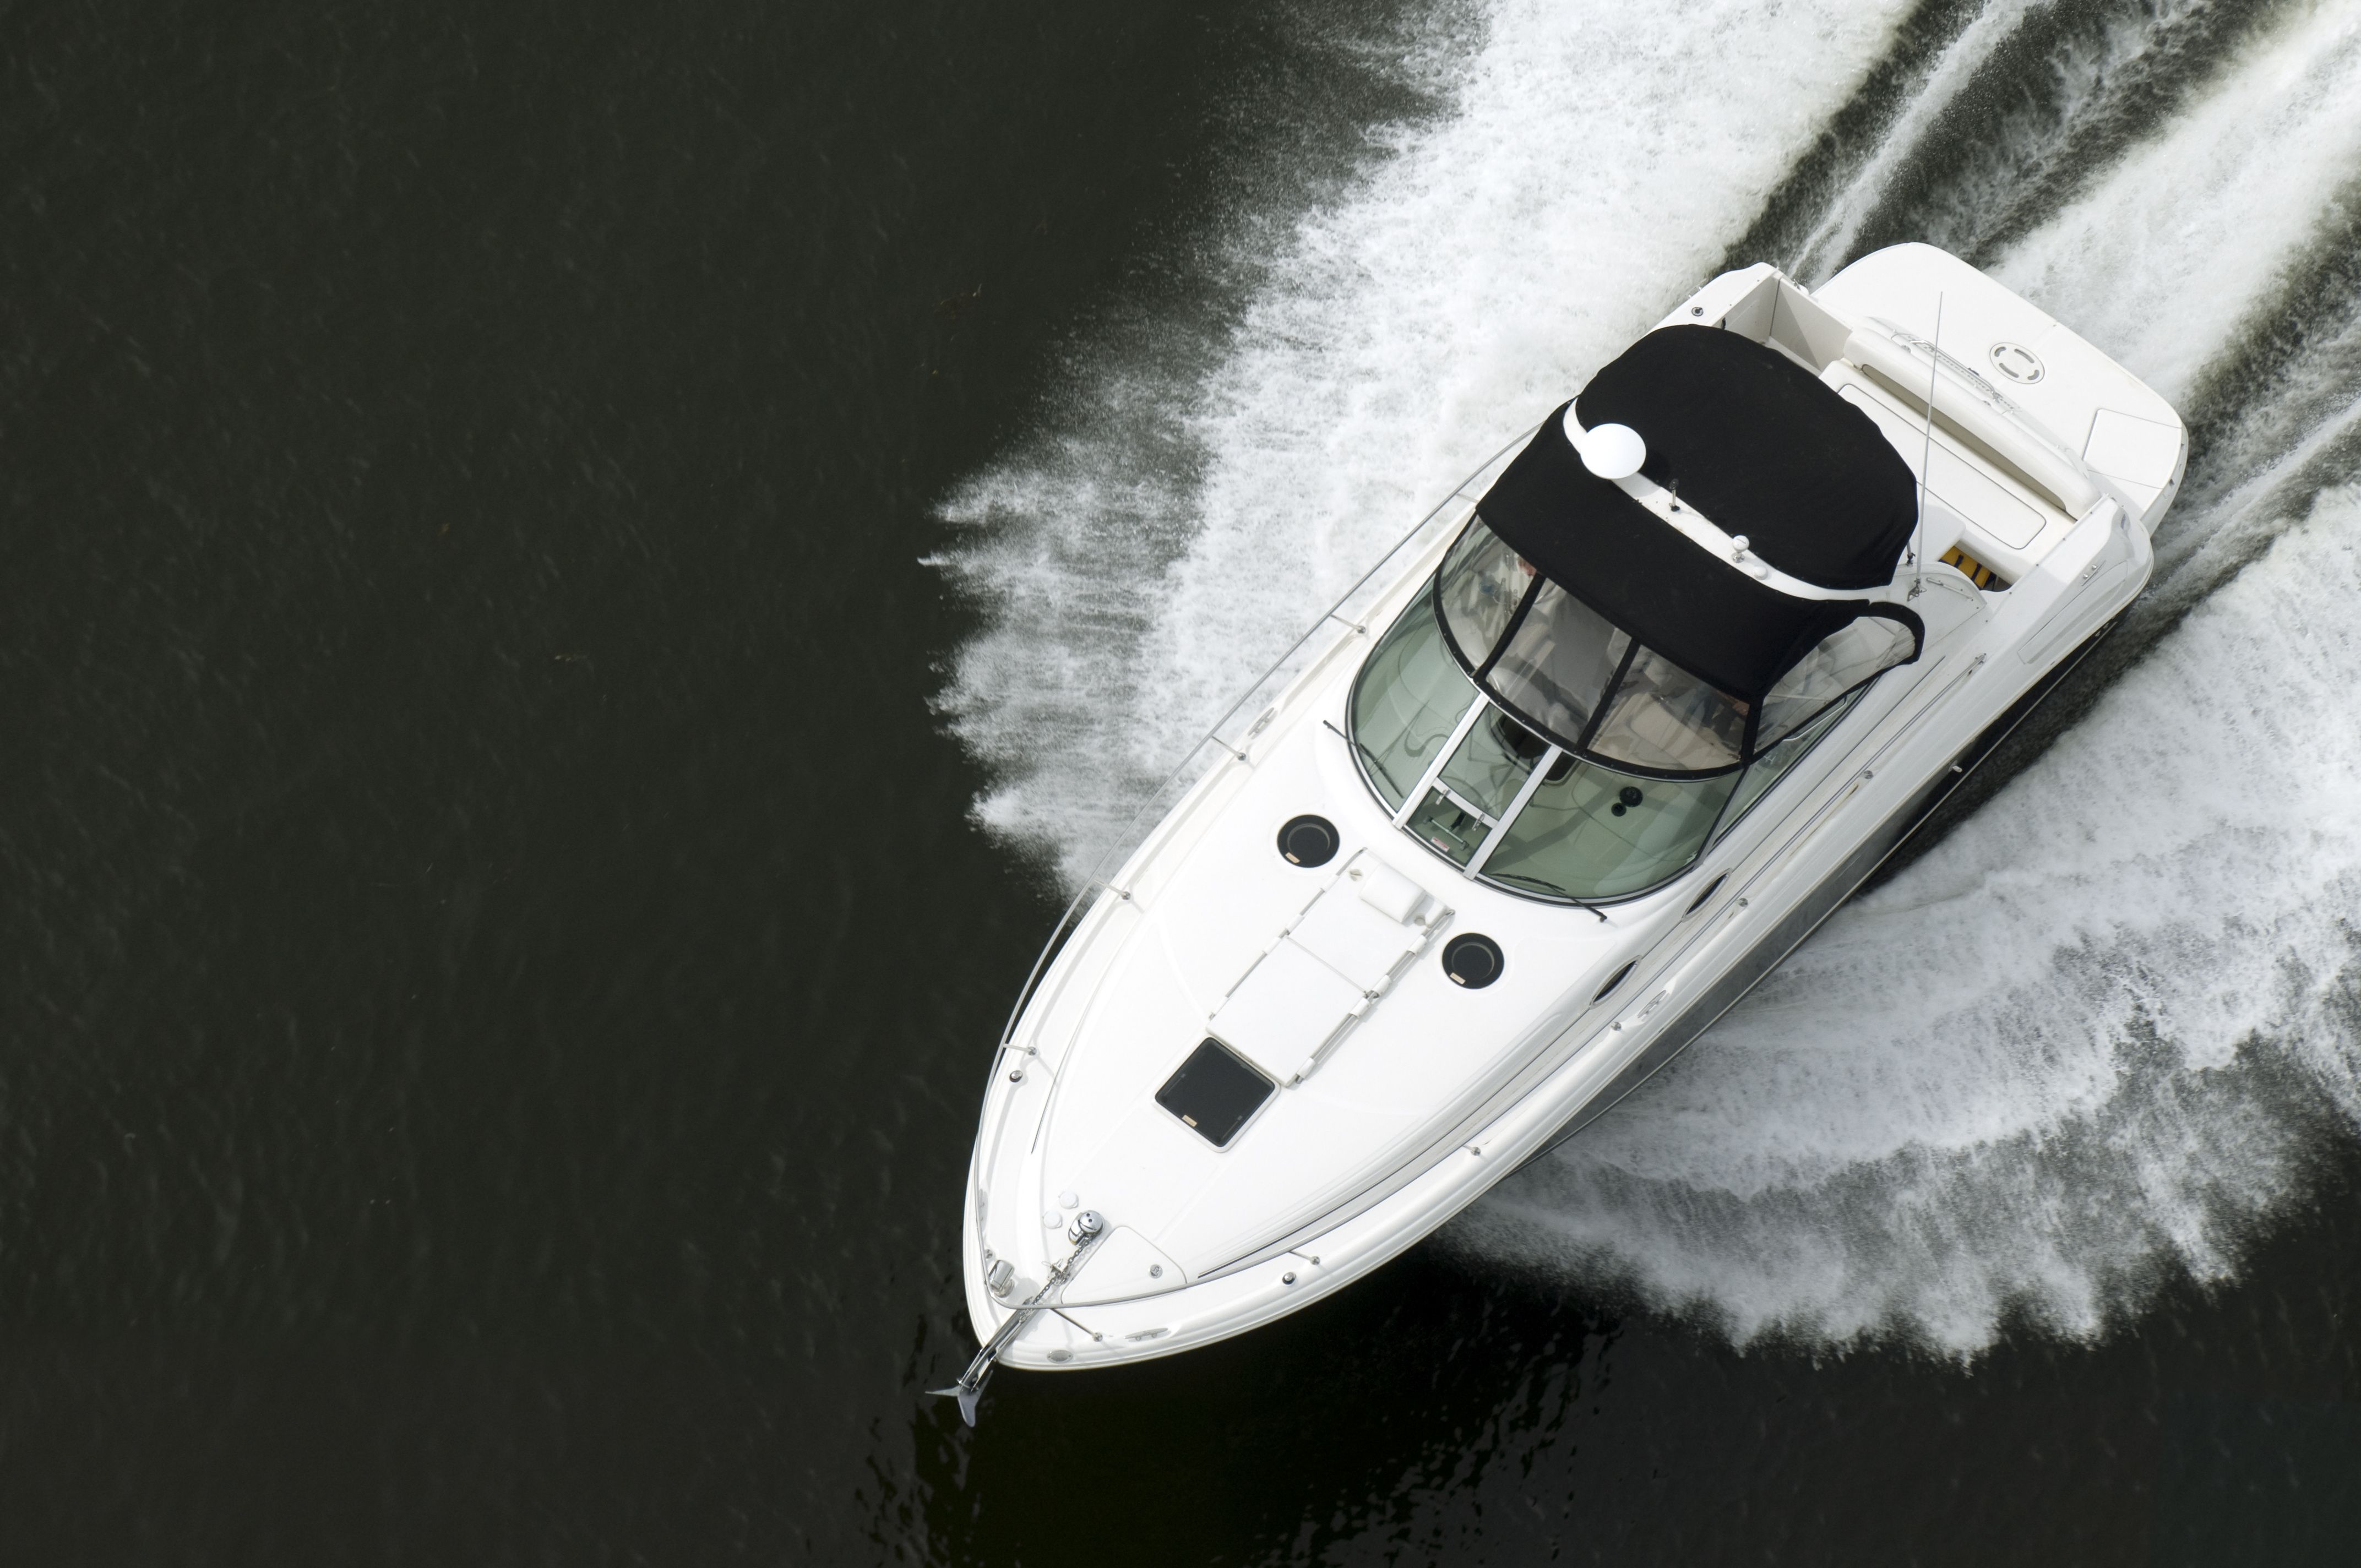 Boating Accident Speed boats, Dress shoes men, Black and